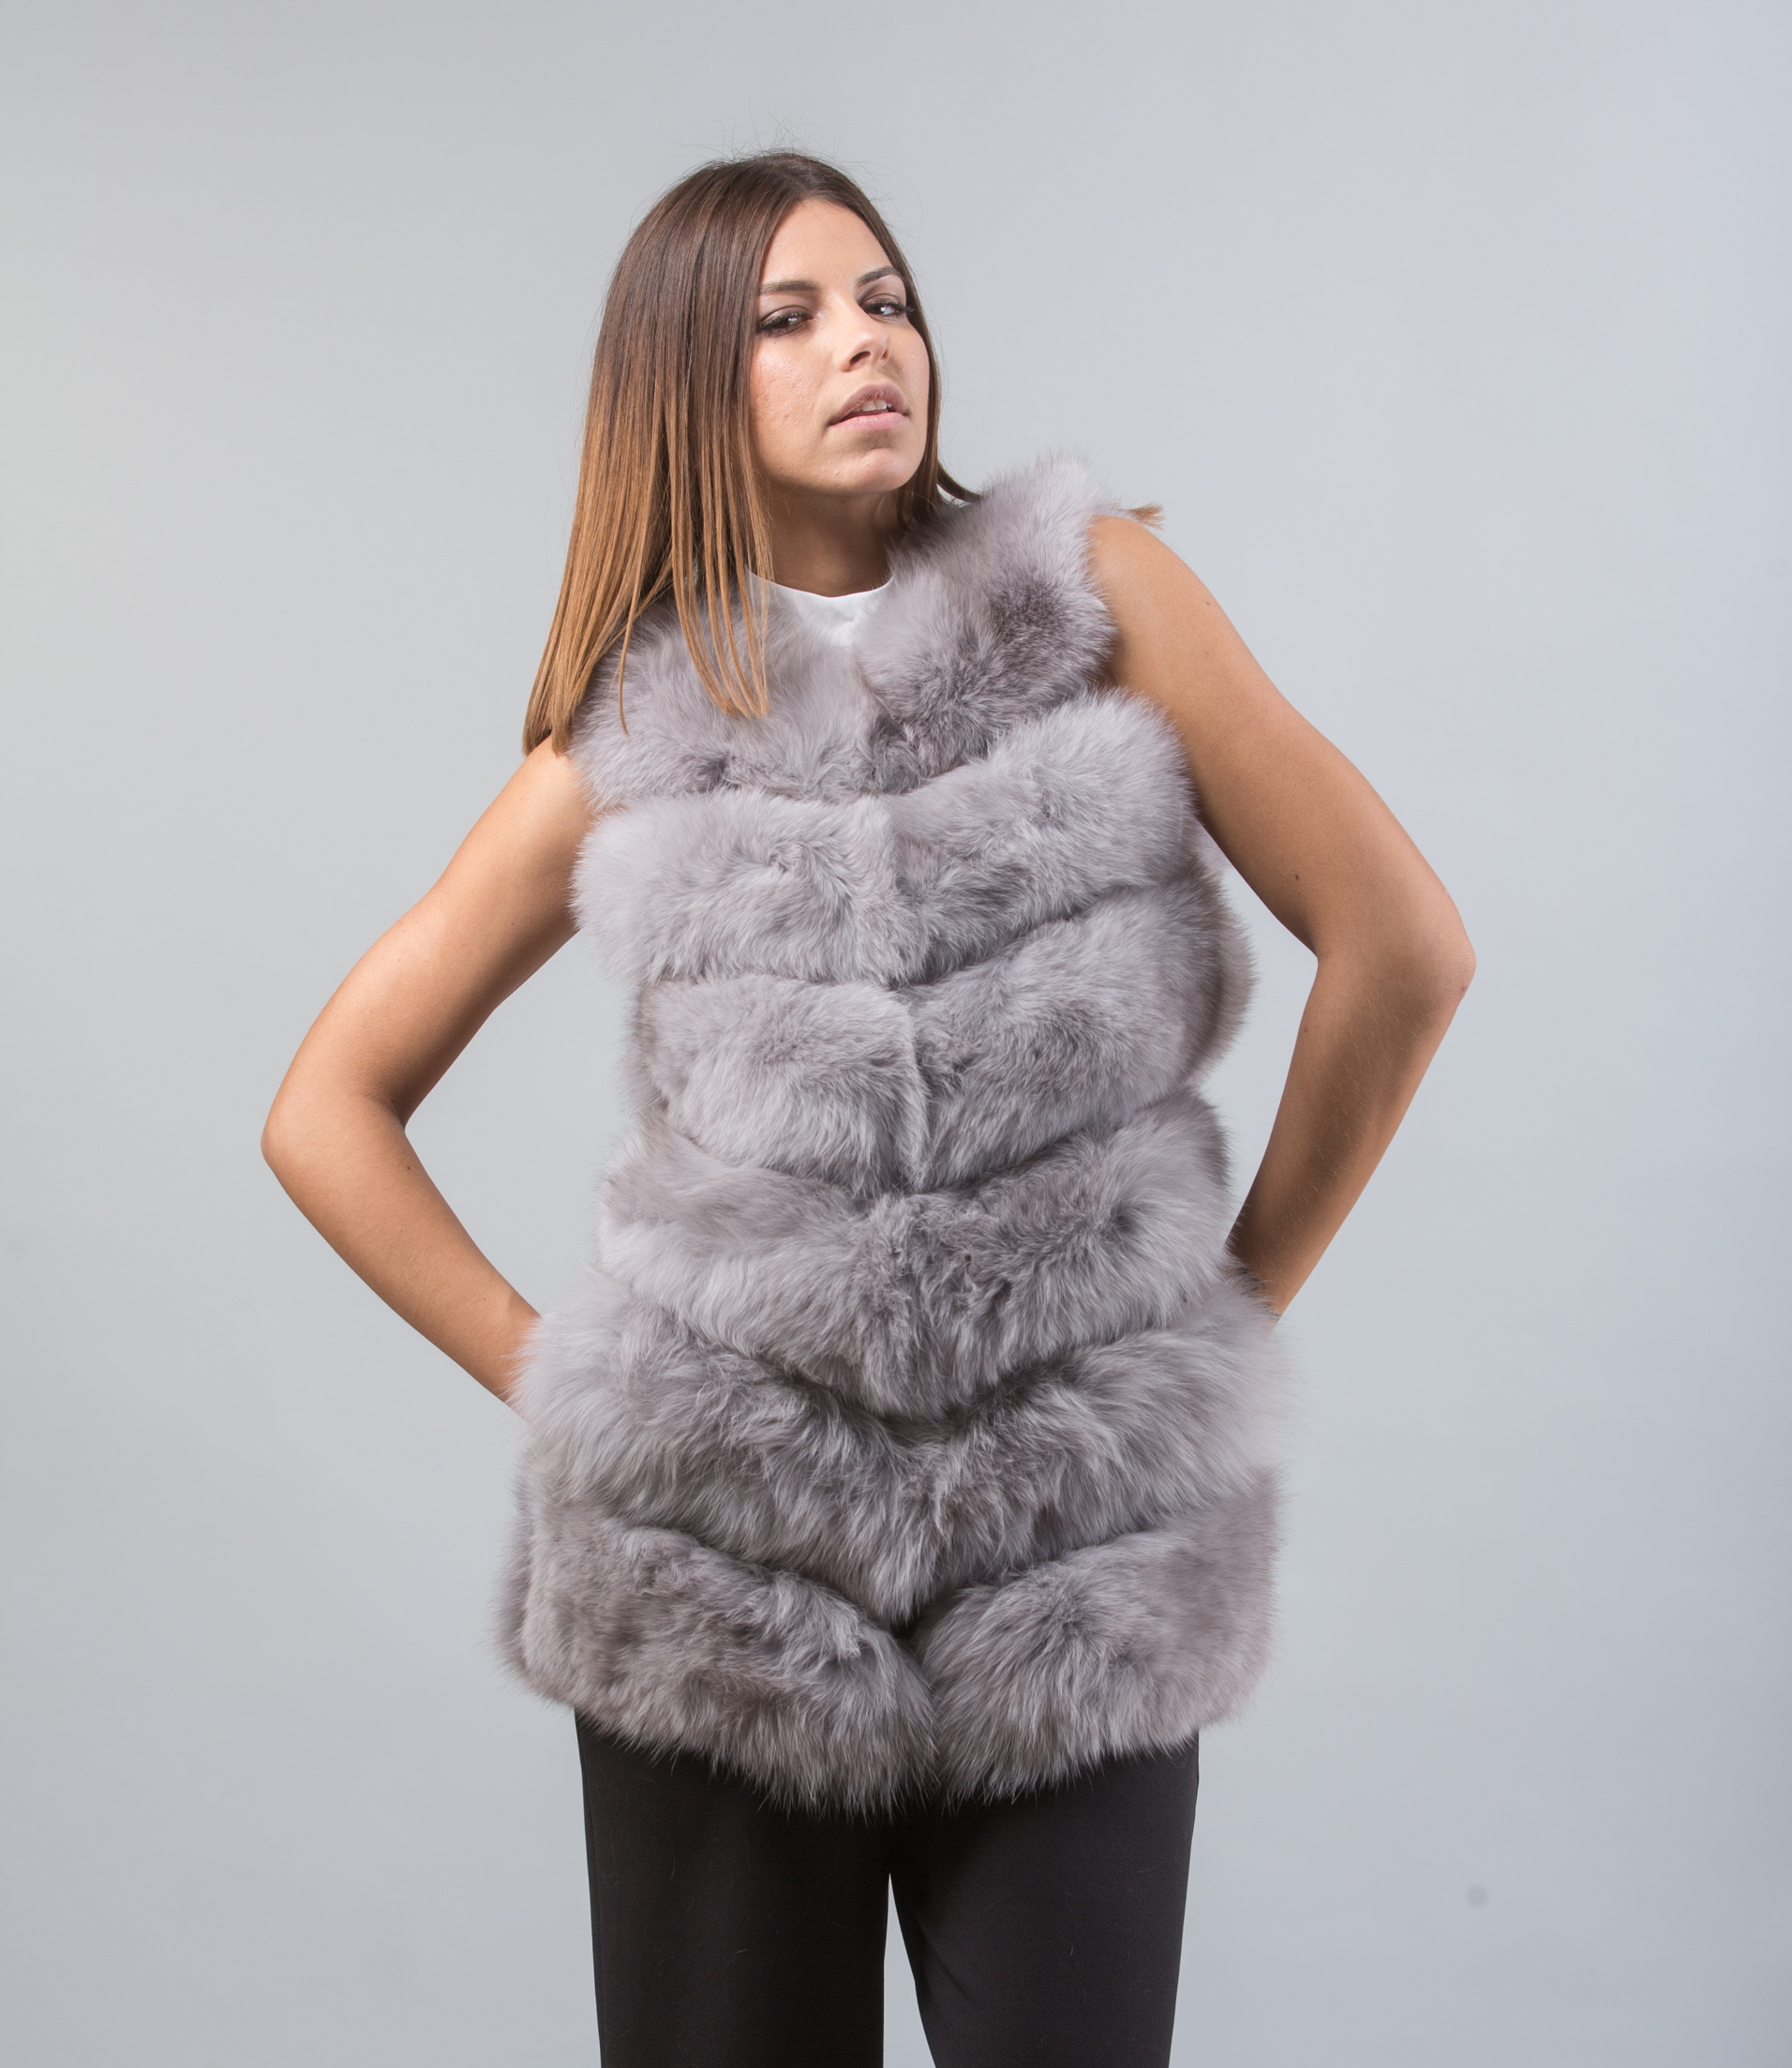 You searched for: gray fur vest! Etsy is the home to thousands of handmade, vintage, and one-of-a-kind products and gifts related to your search. No matter what you're looking for or where you are in the world, our global marketplace of sellers can help you find unique and affordable options. Let's get started!